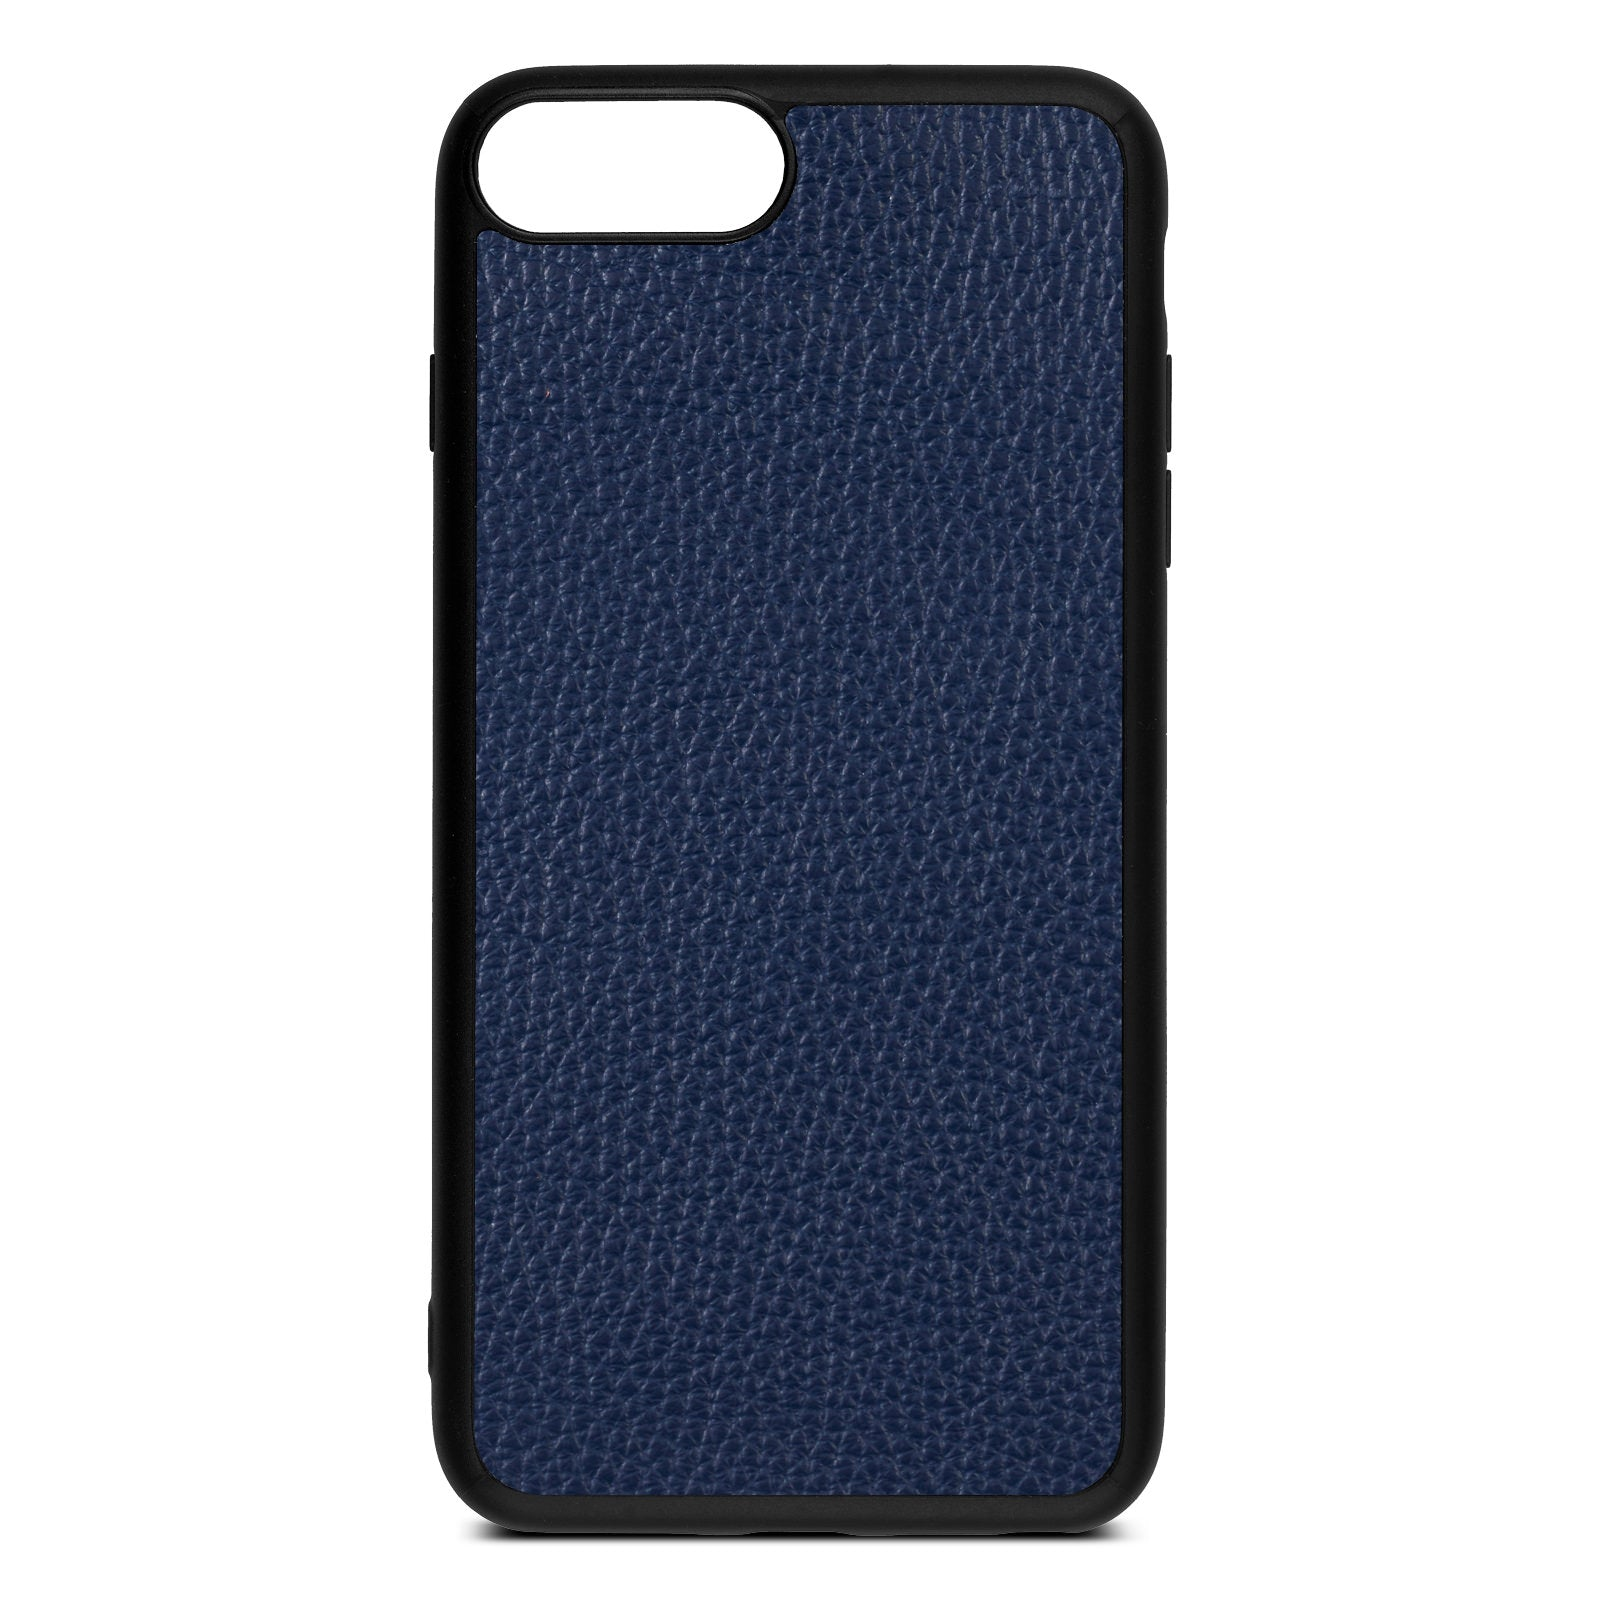 Blank iPhone 8 Plus Navy Blue Pebble Grain Leather Case